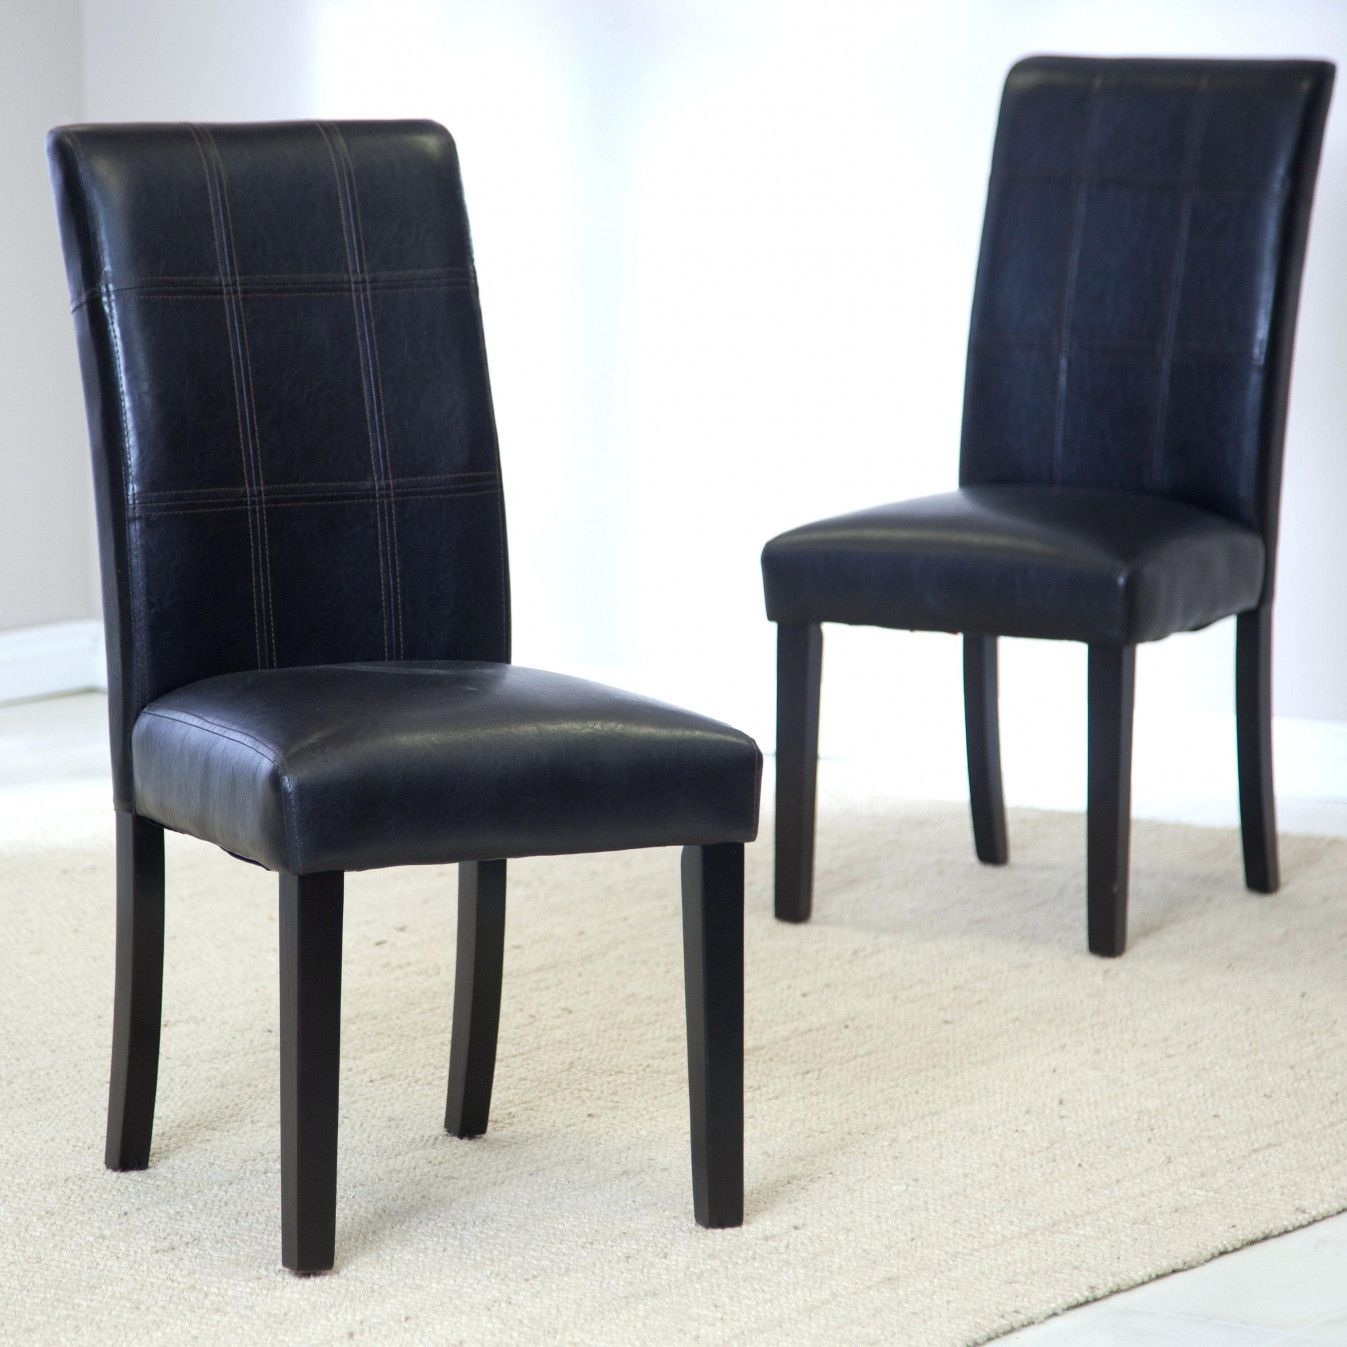 55 Navy Blue Leather Dining Chairs Vintage Modern Furniture Check